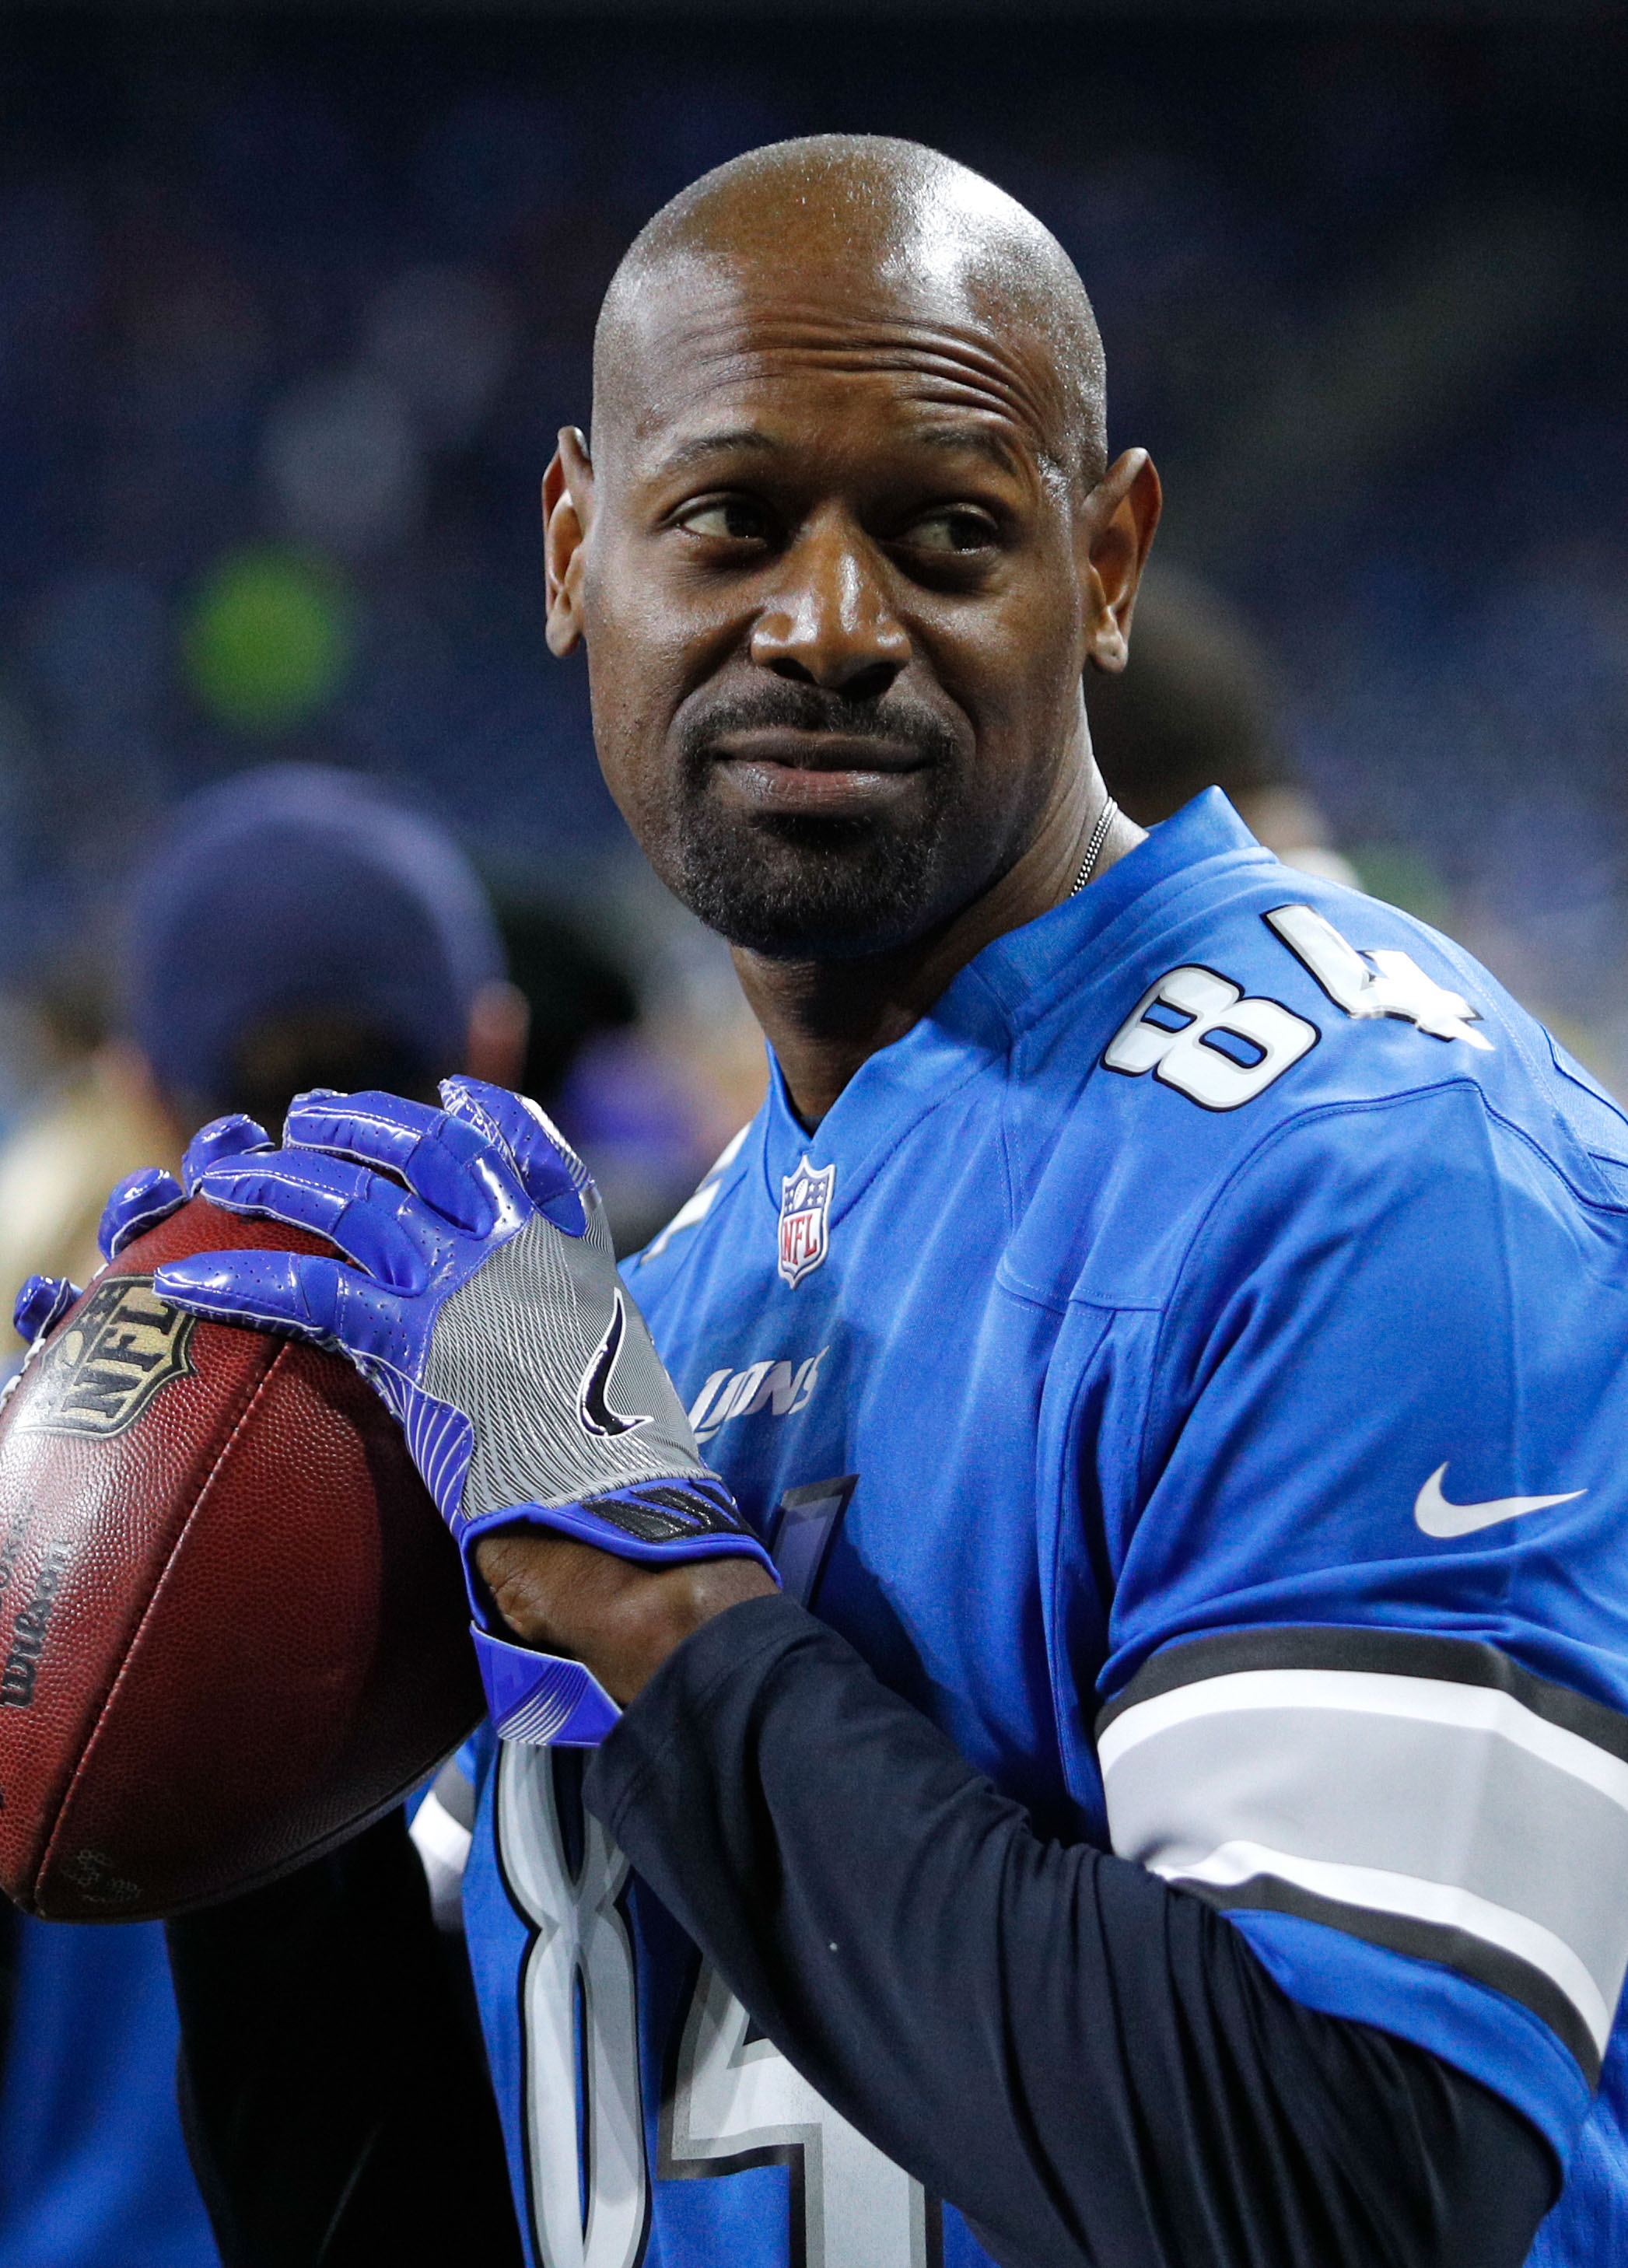 NFL: Chicago Bears at Detroit Lions